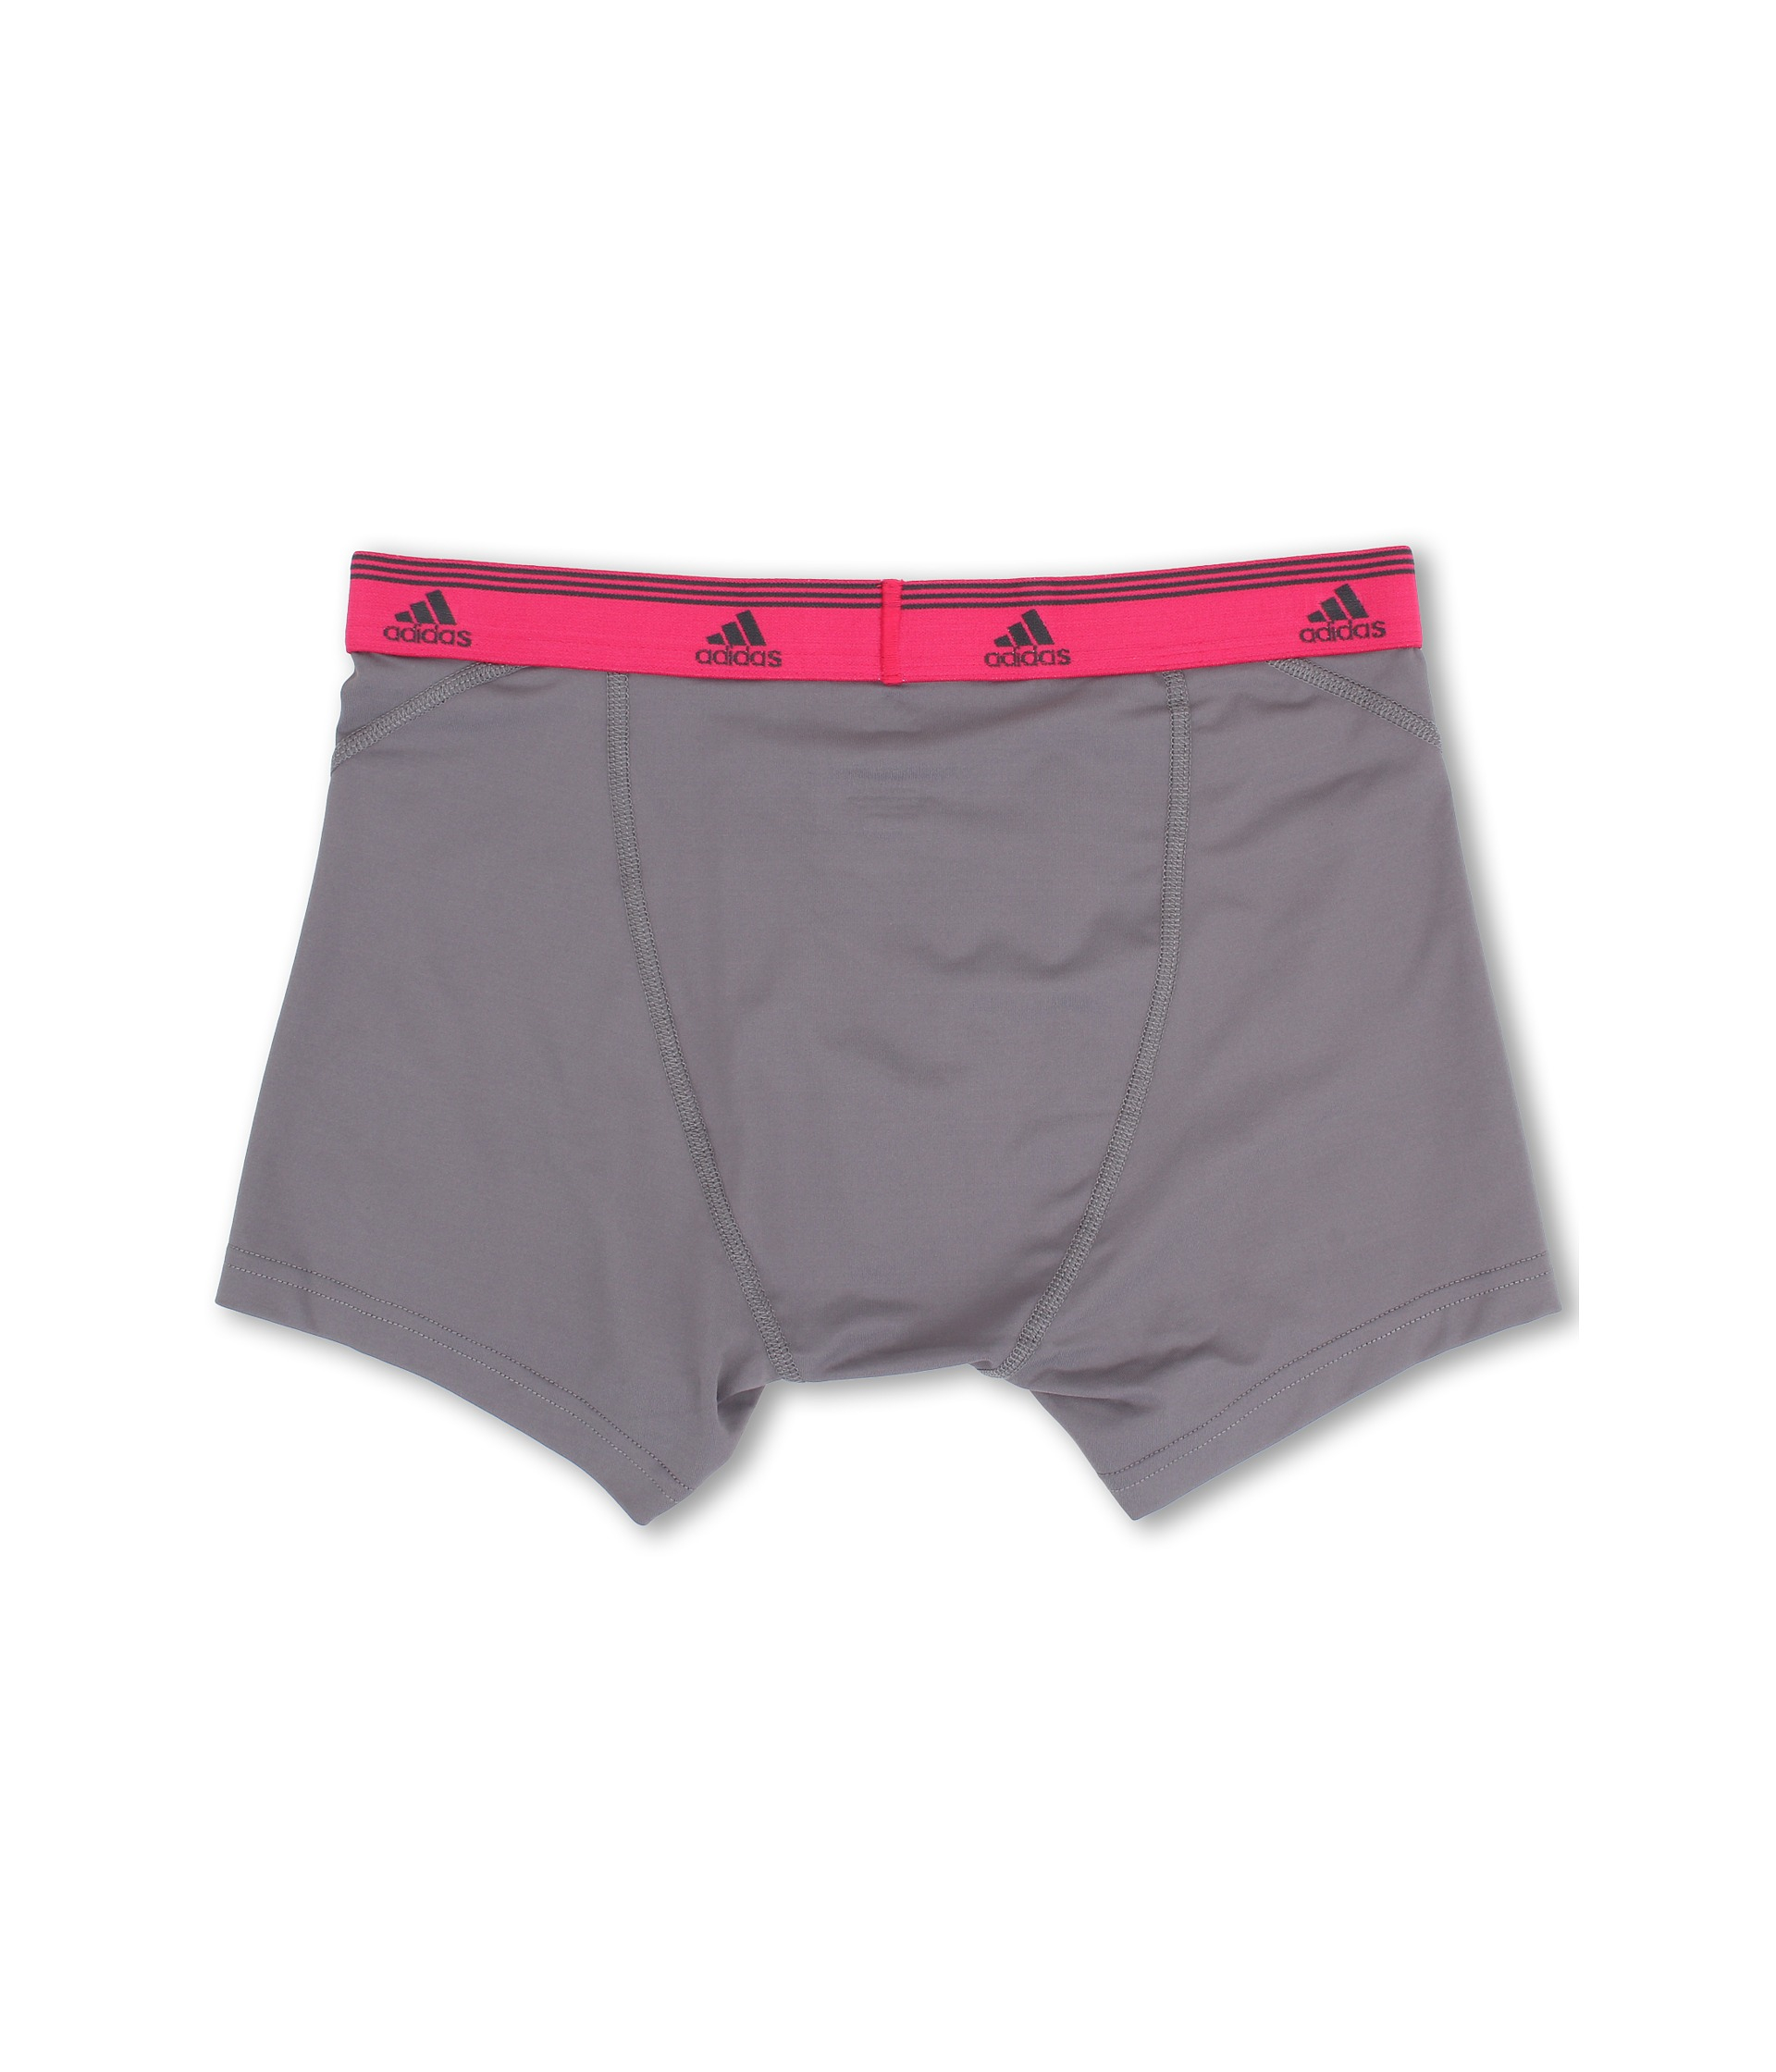 b111d594f908 Lyst - adidas Sport Performance Climalite 2 Pack Trunk in Pink for Men